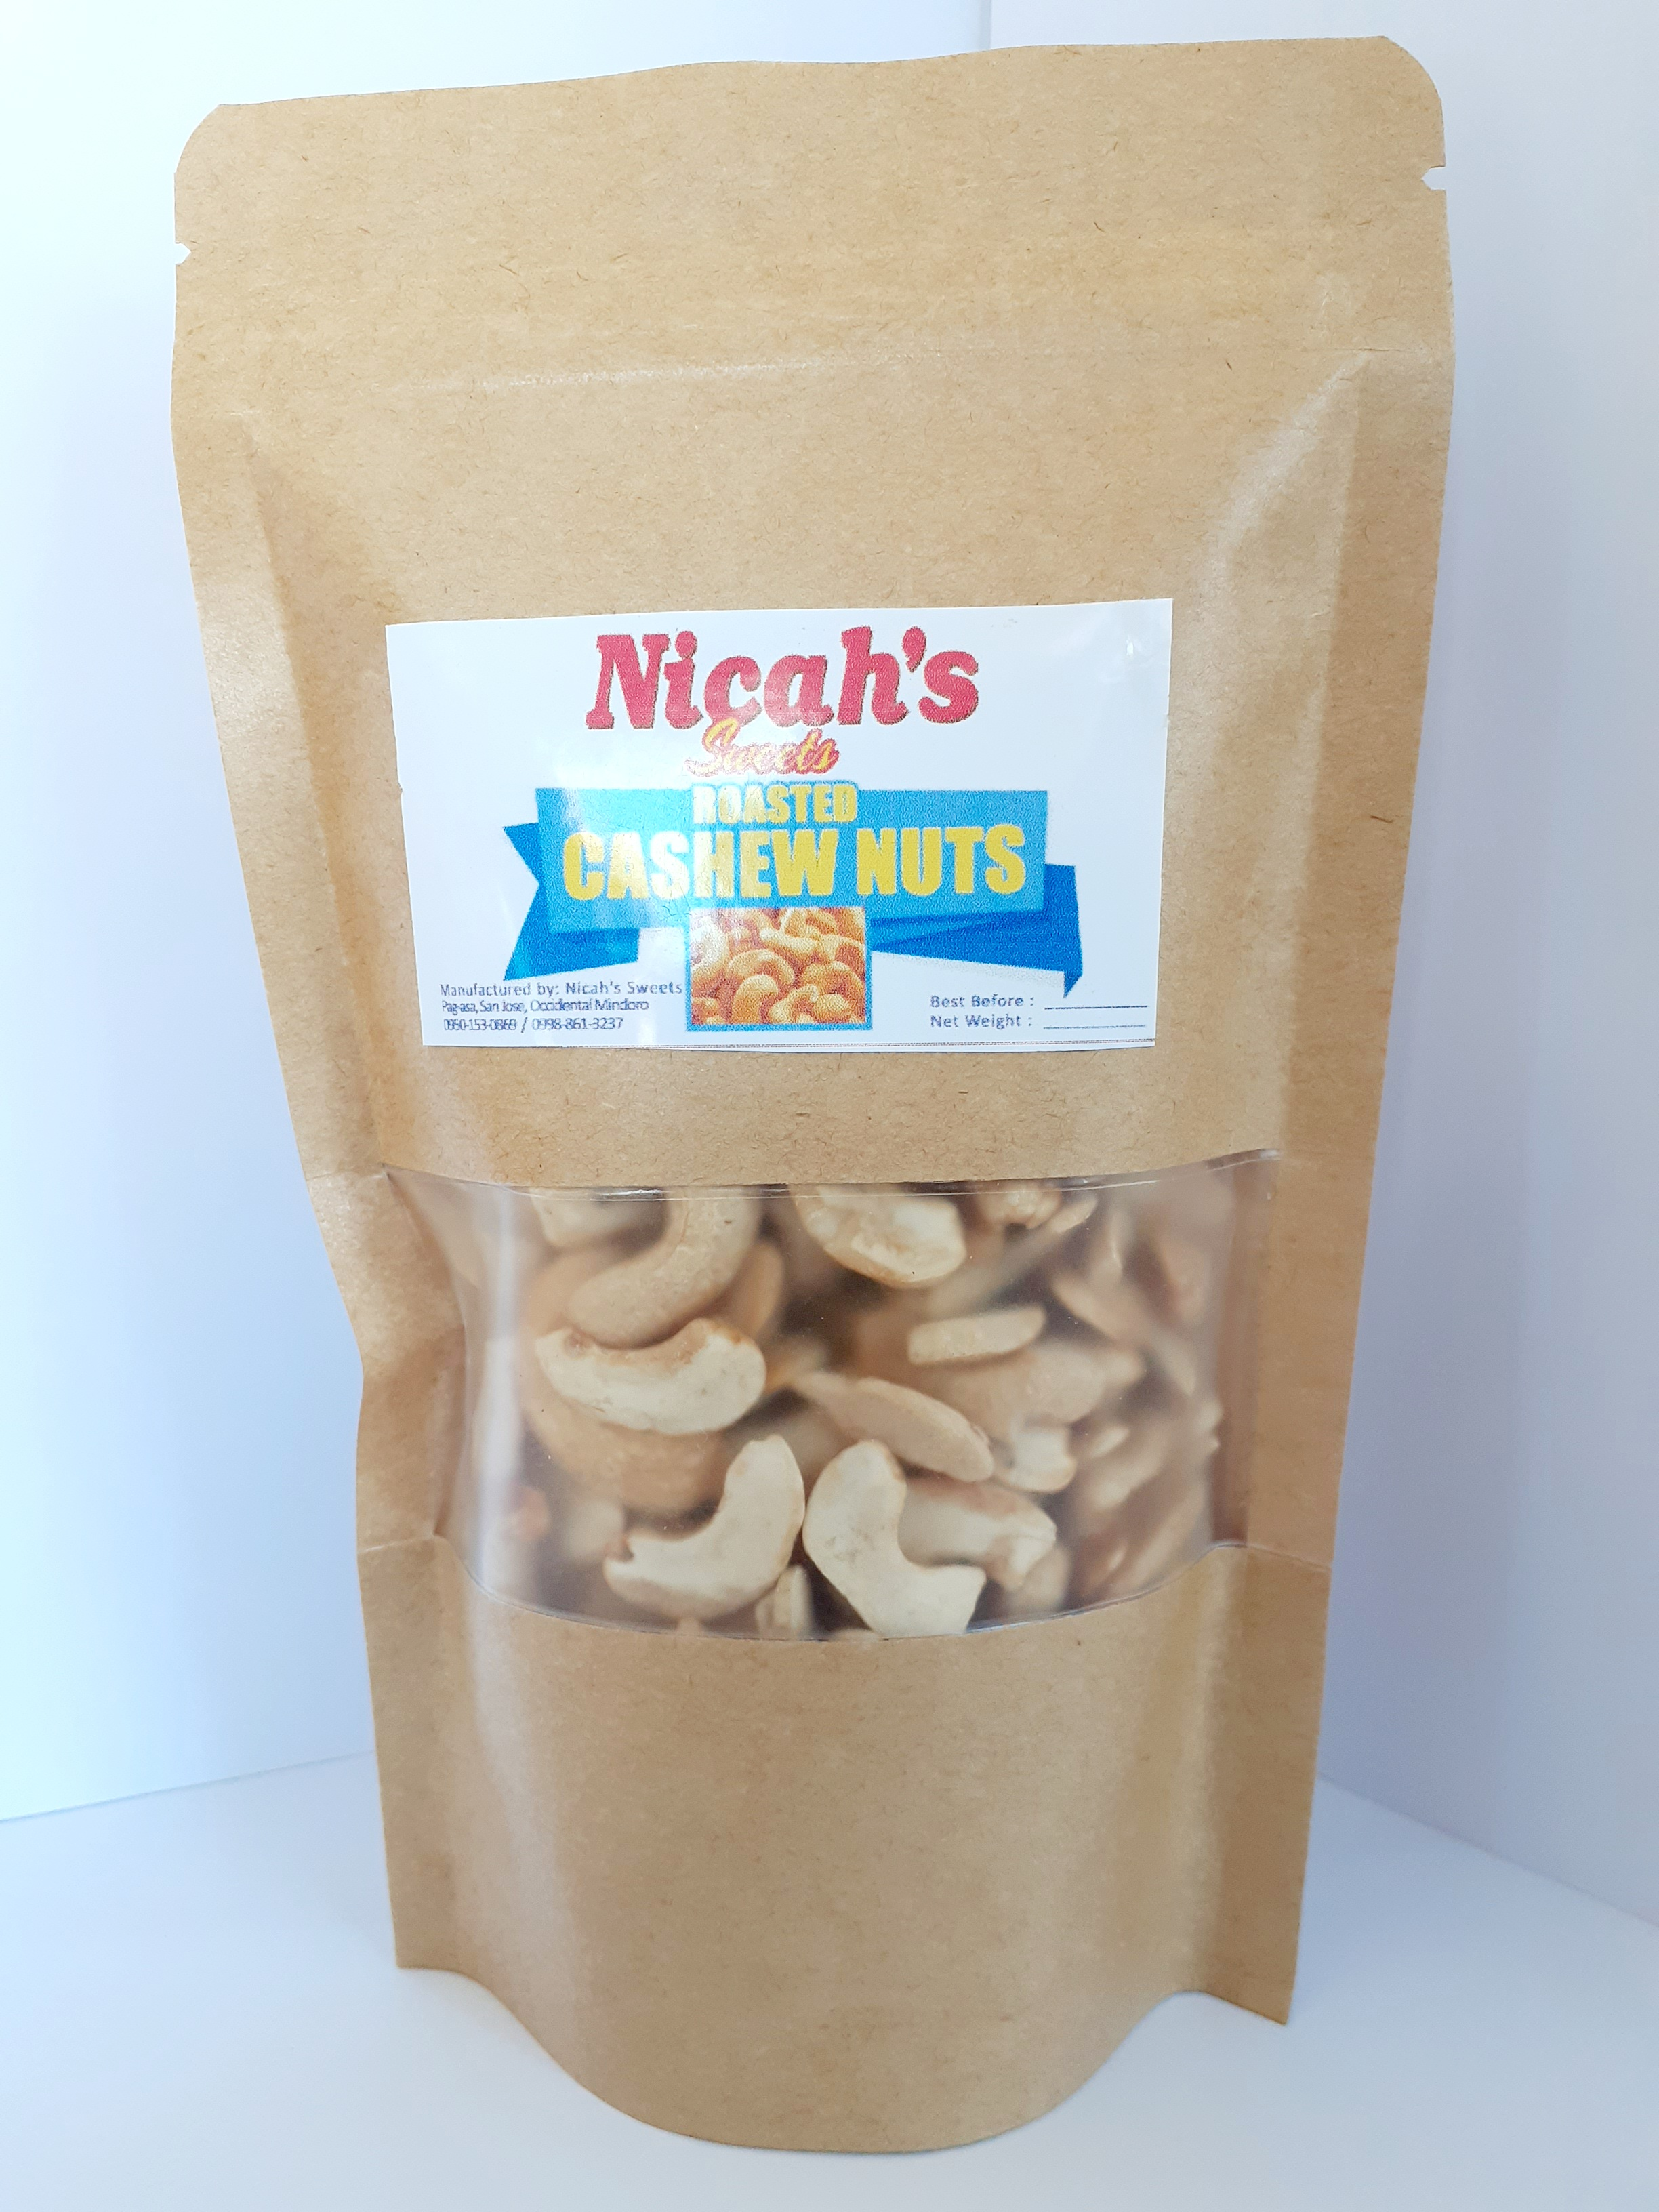 Nicah's Roasted Cashew Nuts (250g)